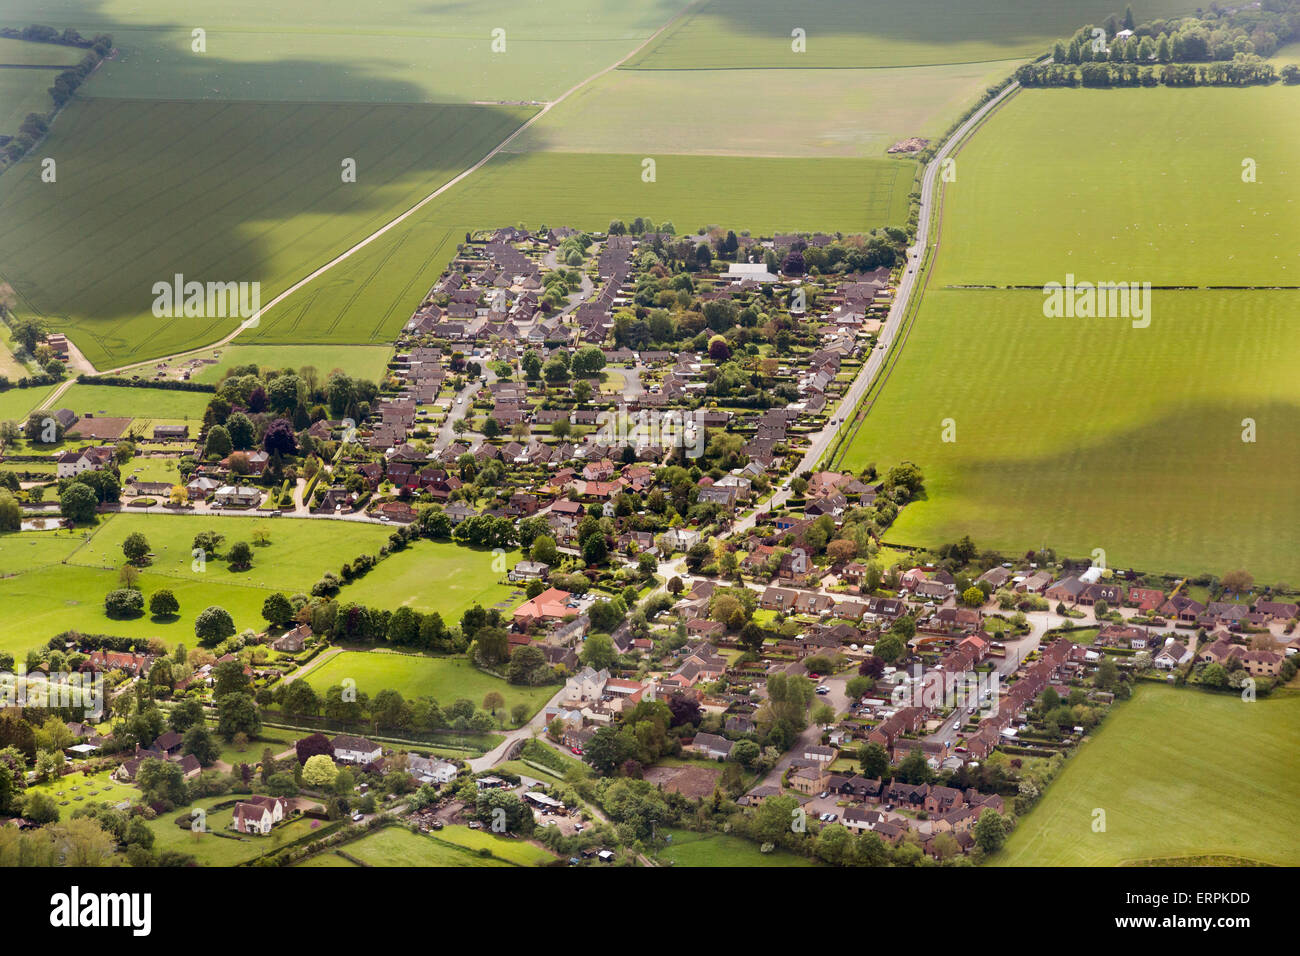 aerial photo of Moulton village in Suffolk - Stock Image